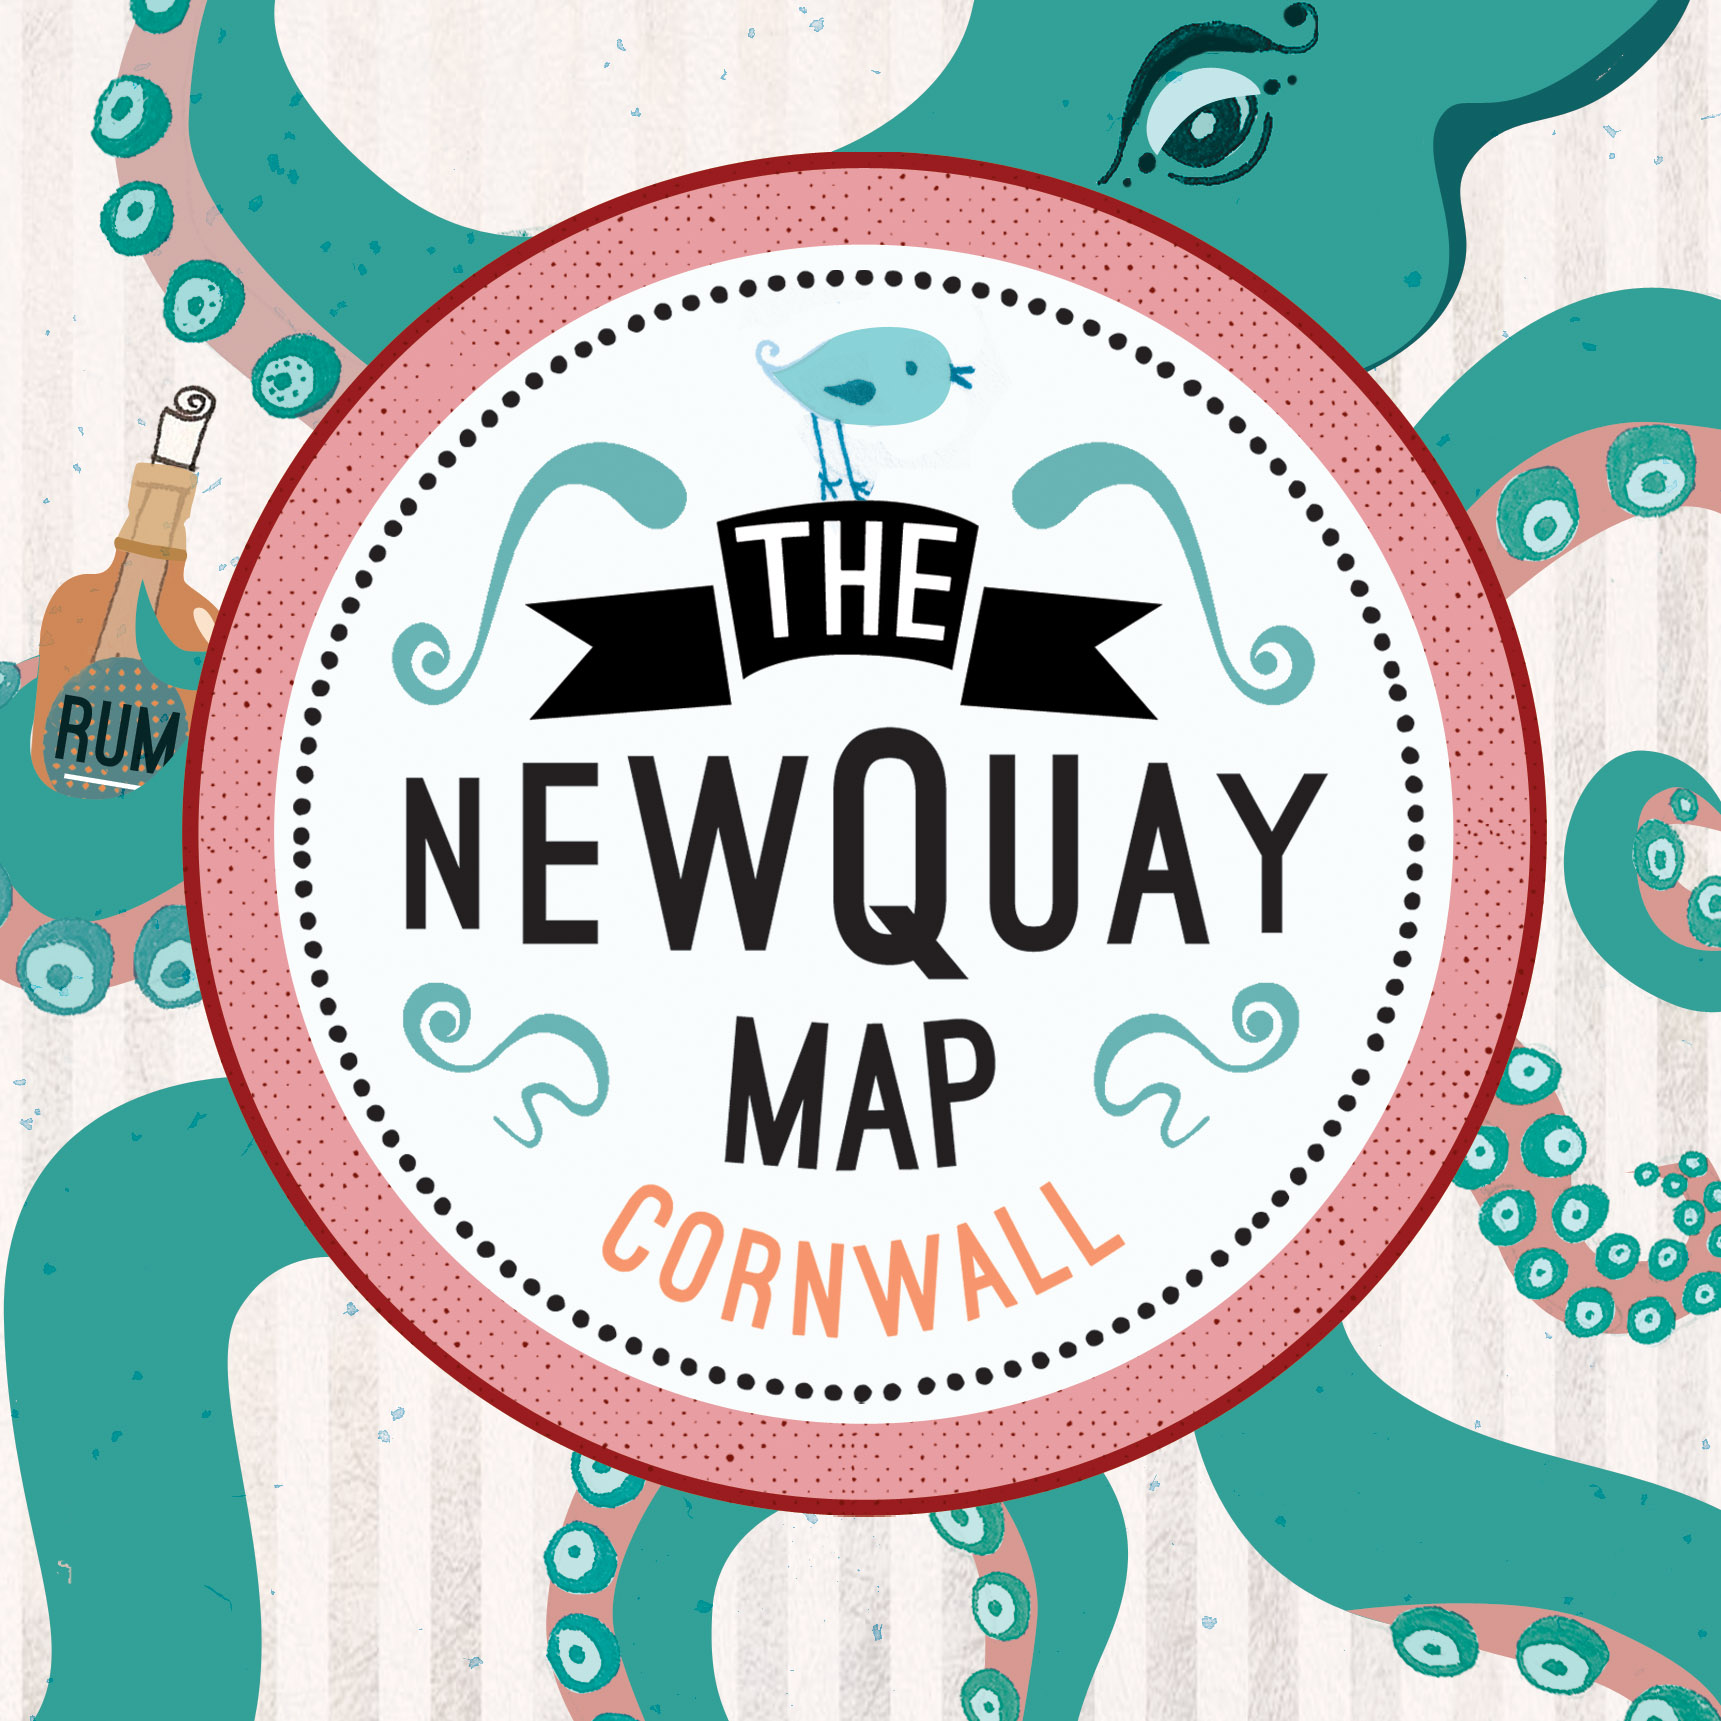 The Newquay Map Download